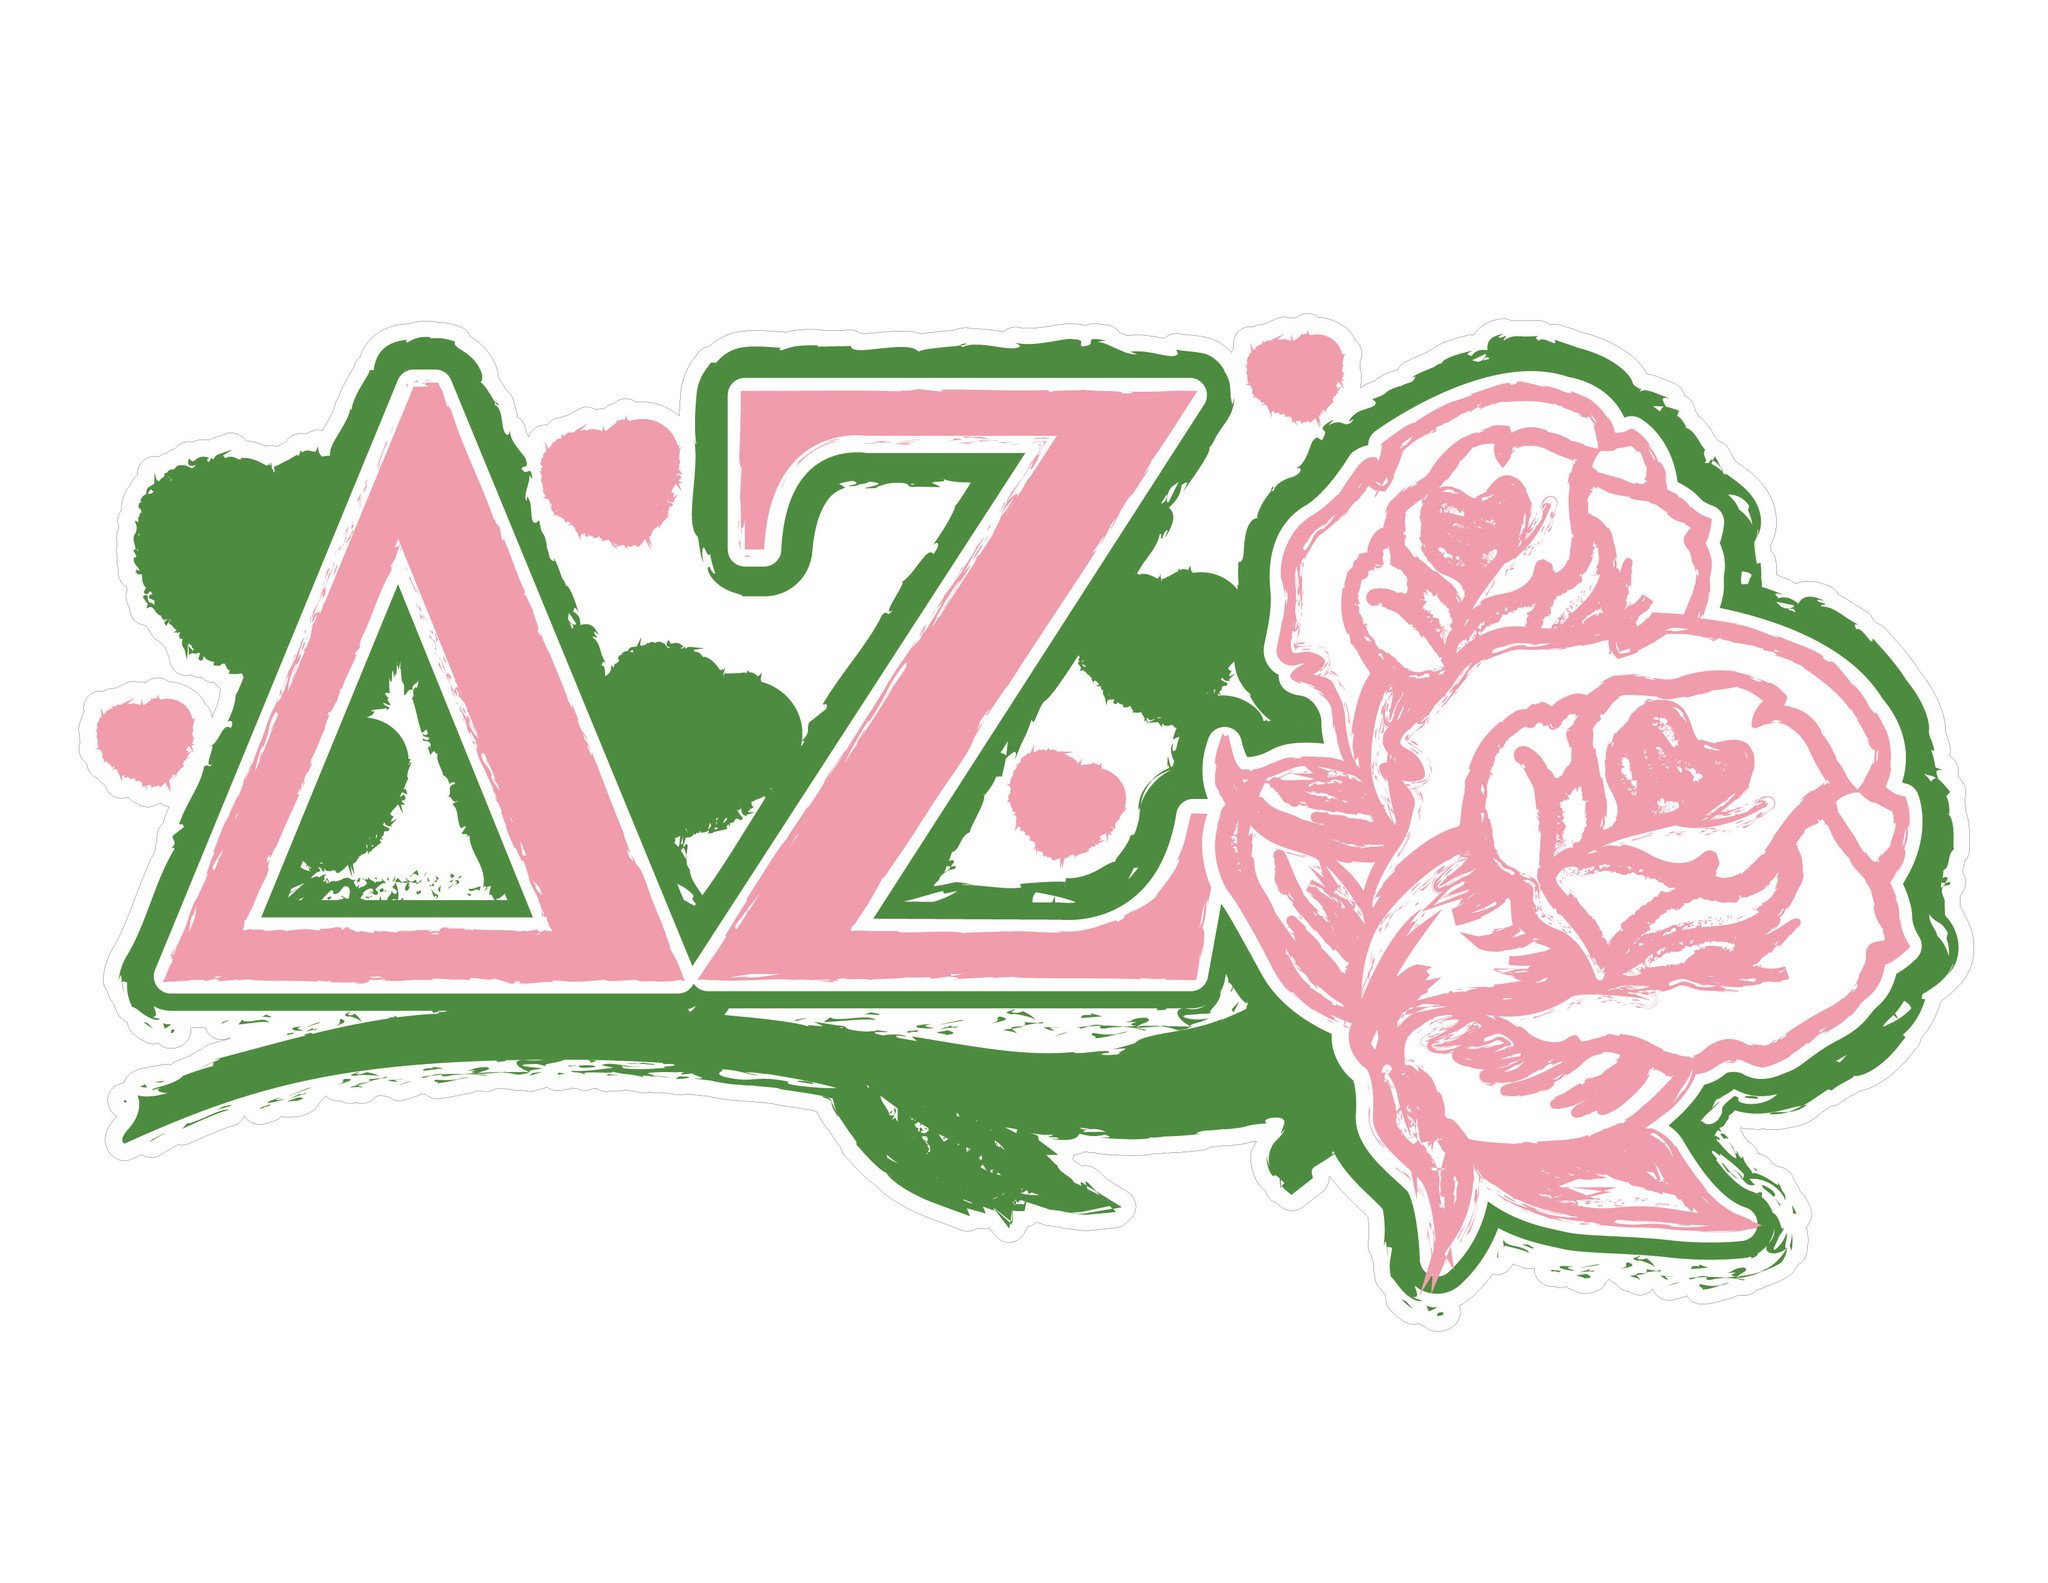 Delta Zeta 11.75 x 6 Laptop Skin/Wall Decal.